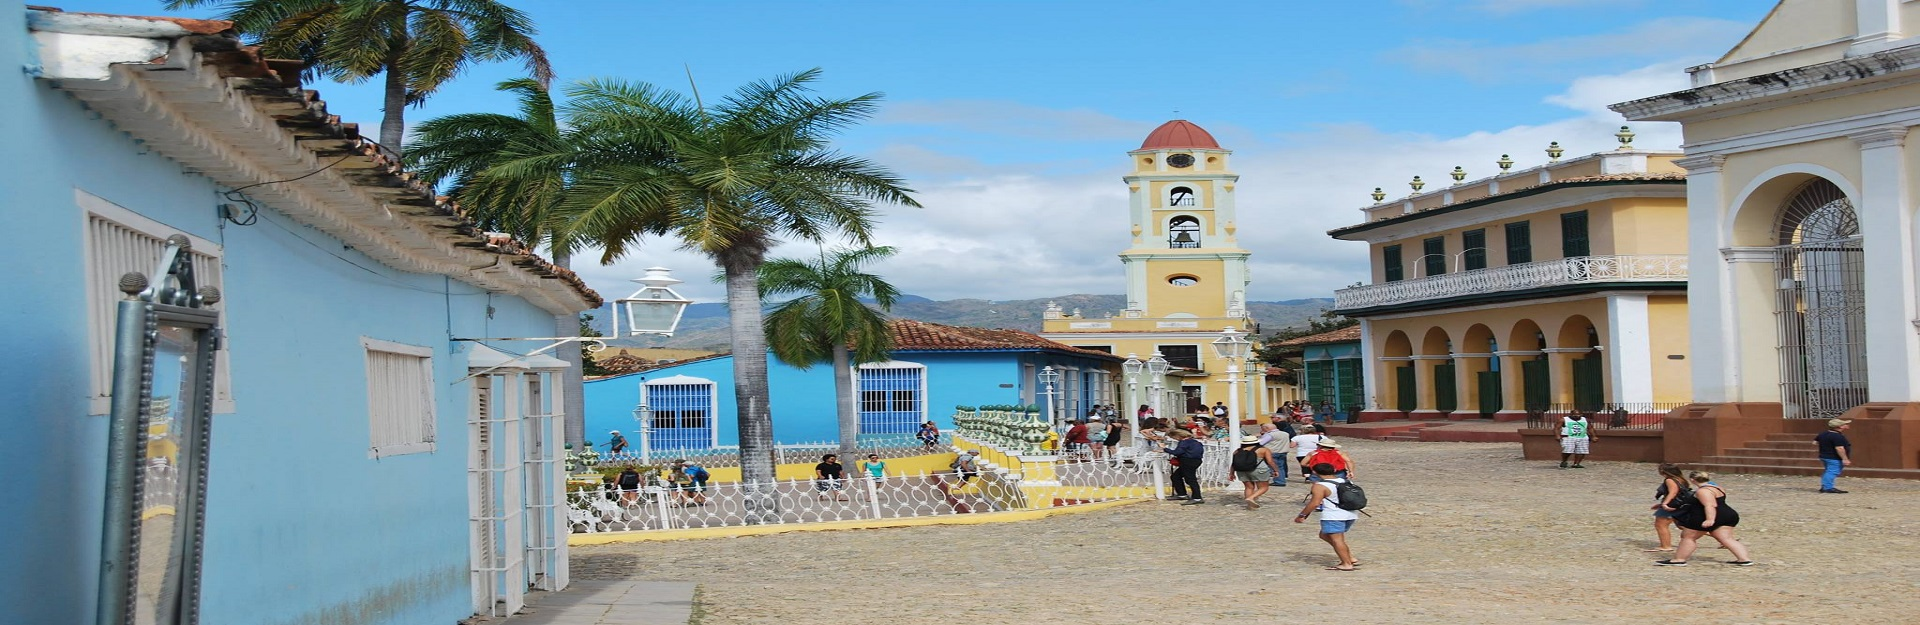 Plaza Mayor, Trinidad, Sancti Spíritus